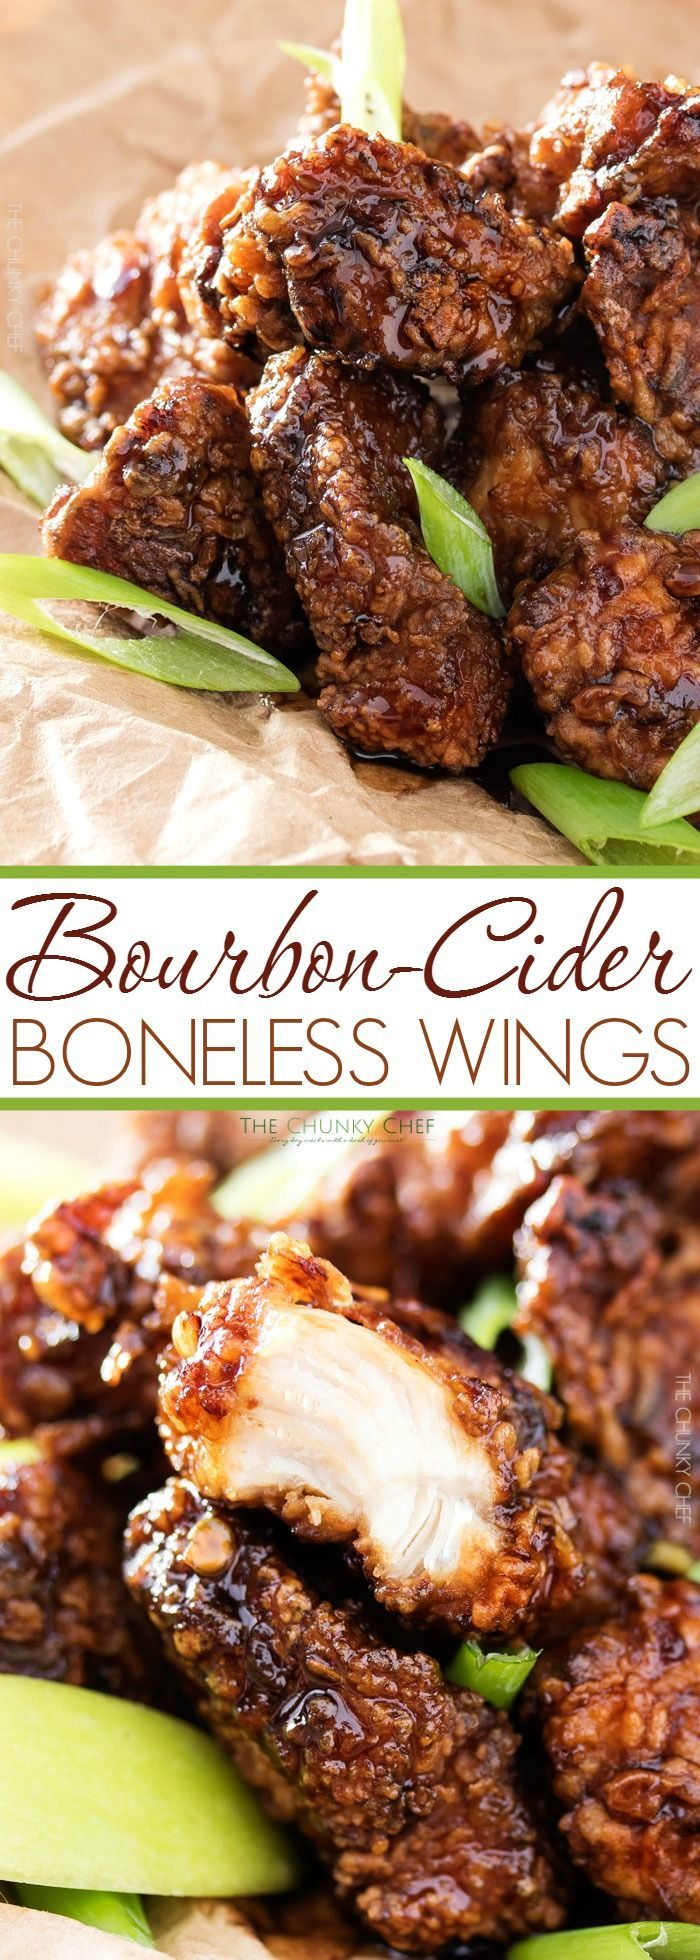 Bourbon Cider Boneless Wings - The Chunky Chef